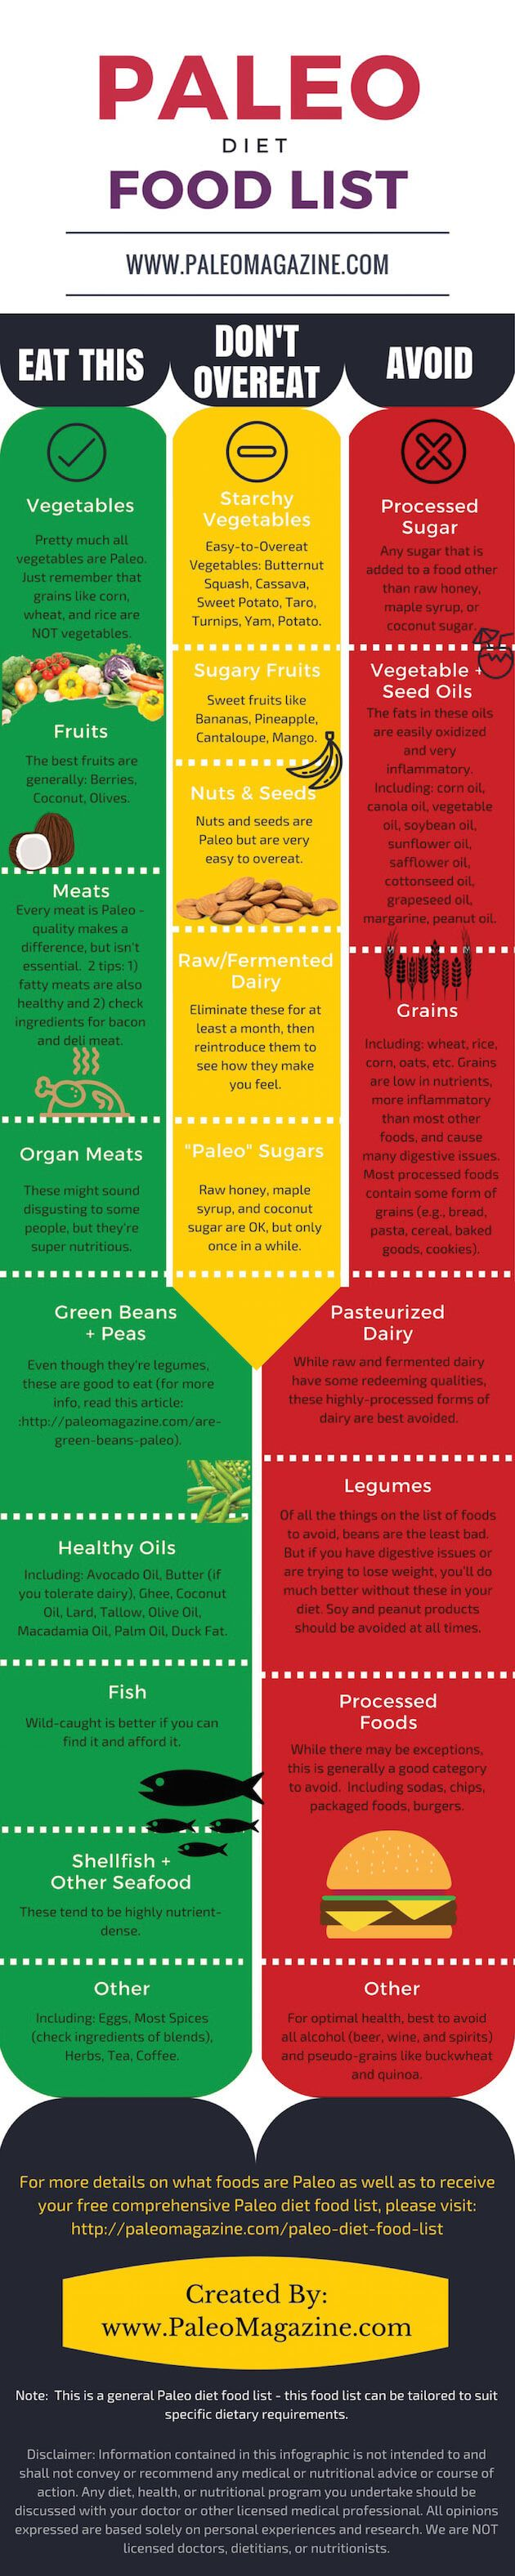 Paleo Diet Food List Infographic Image - visit http://paleomagazine.com/paleo-diet-food-list to get this complete Paleo Diet Food List - including a downloadable PDF to reference wherever you go